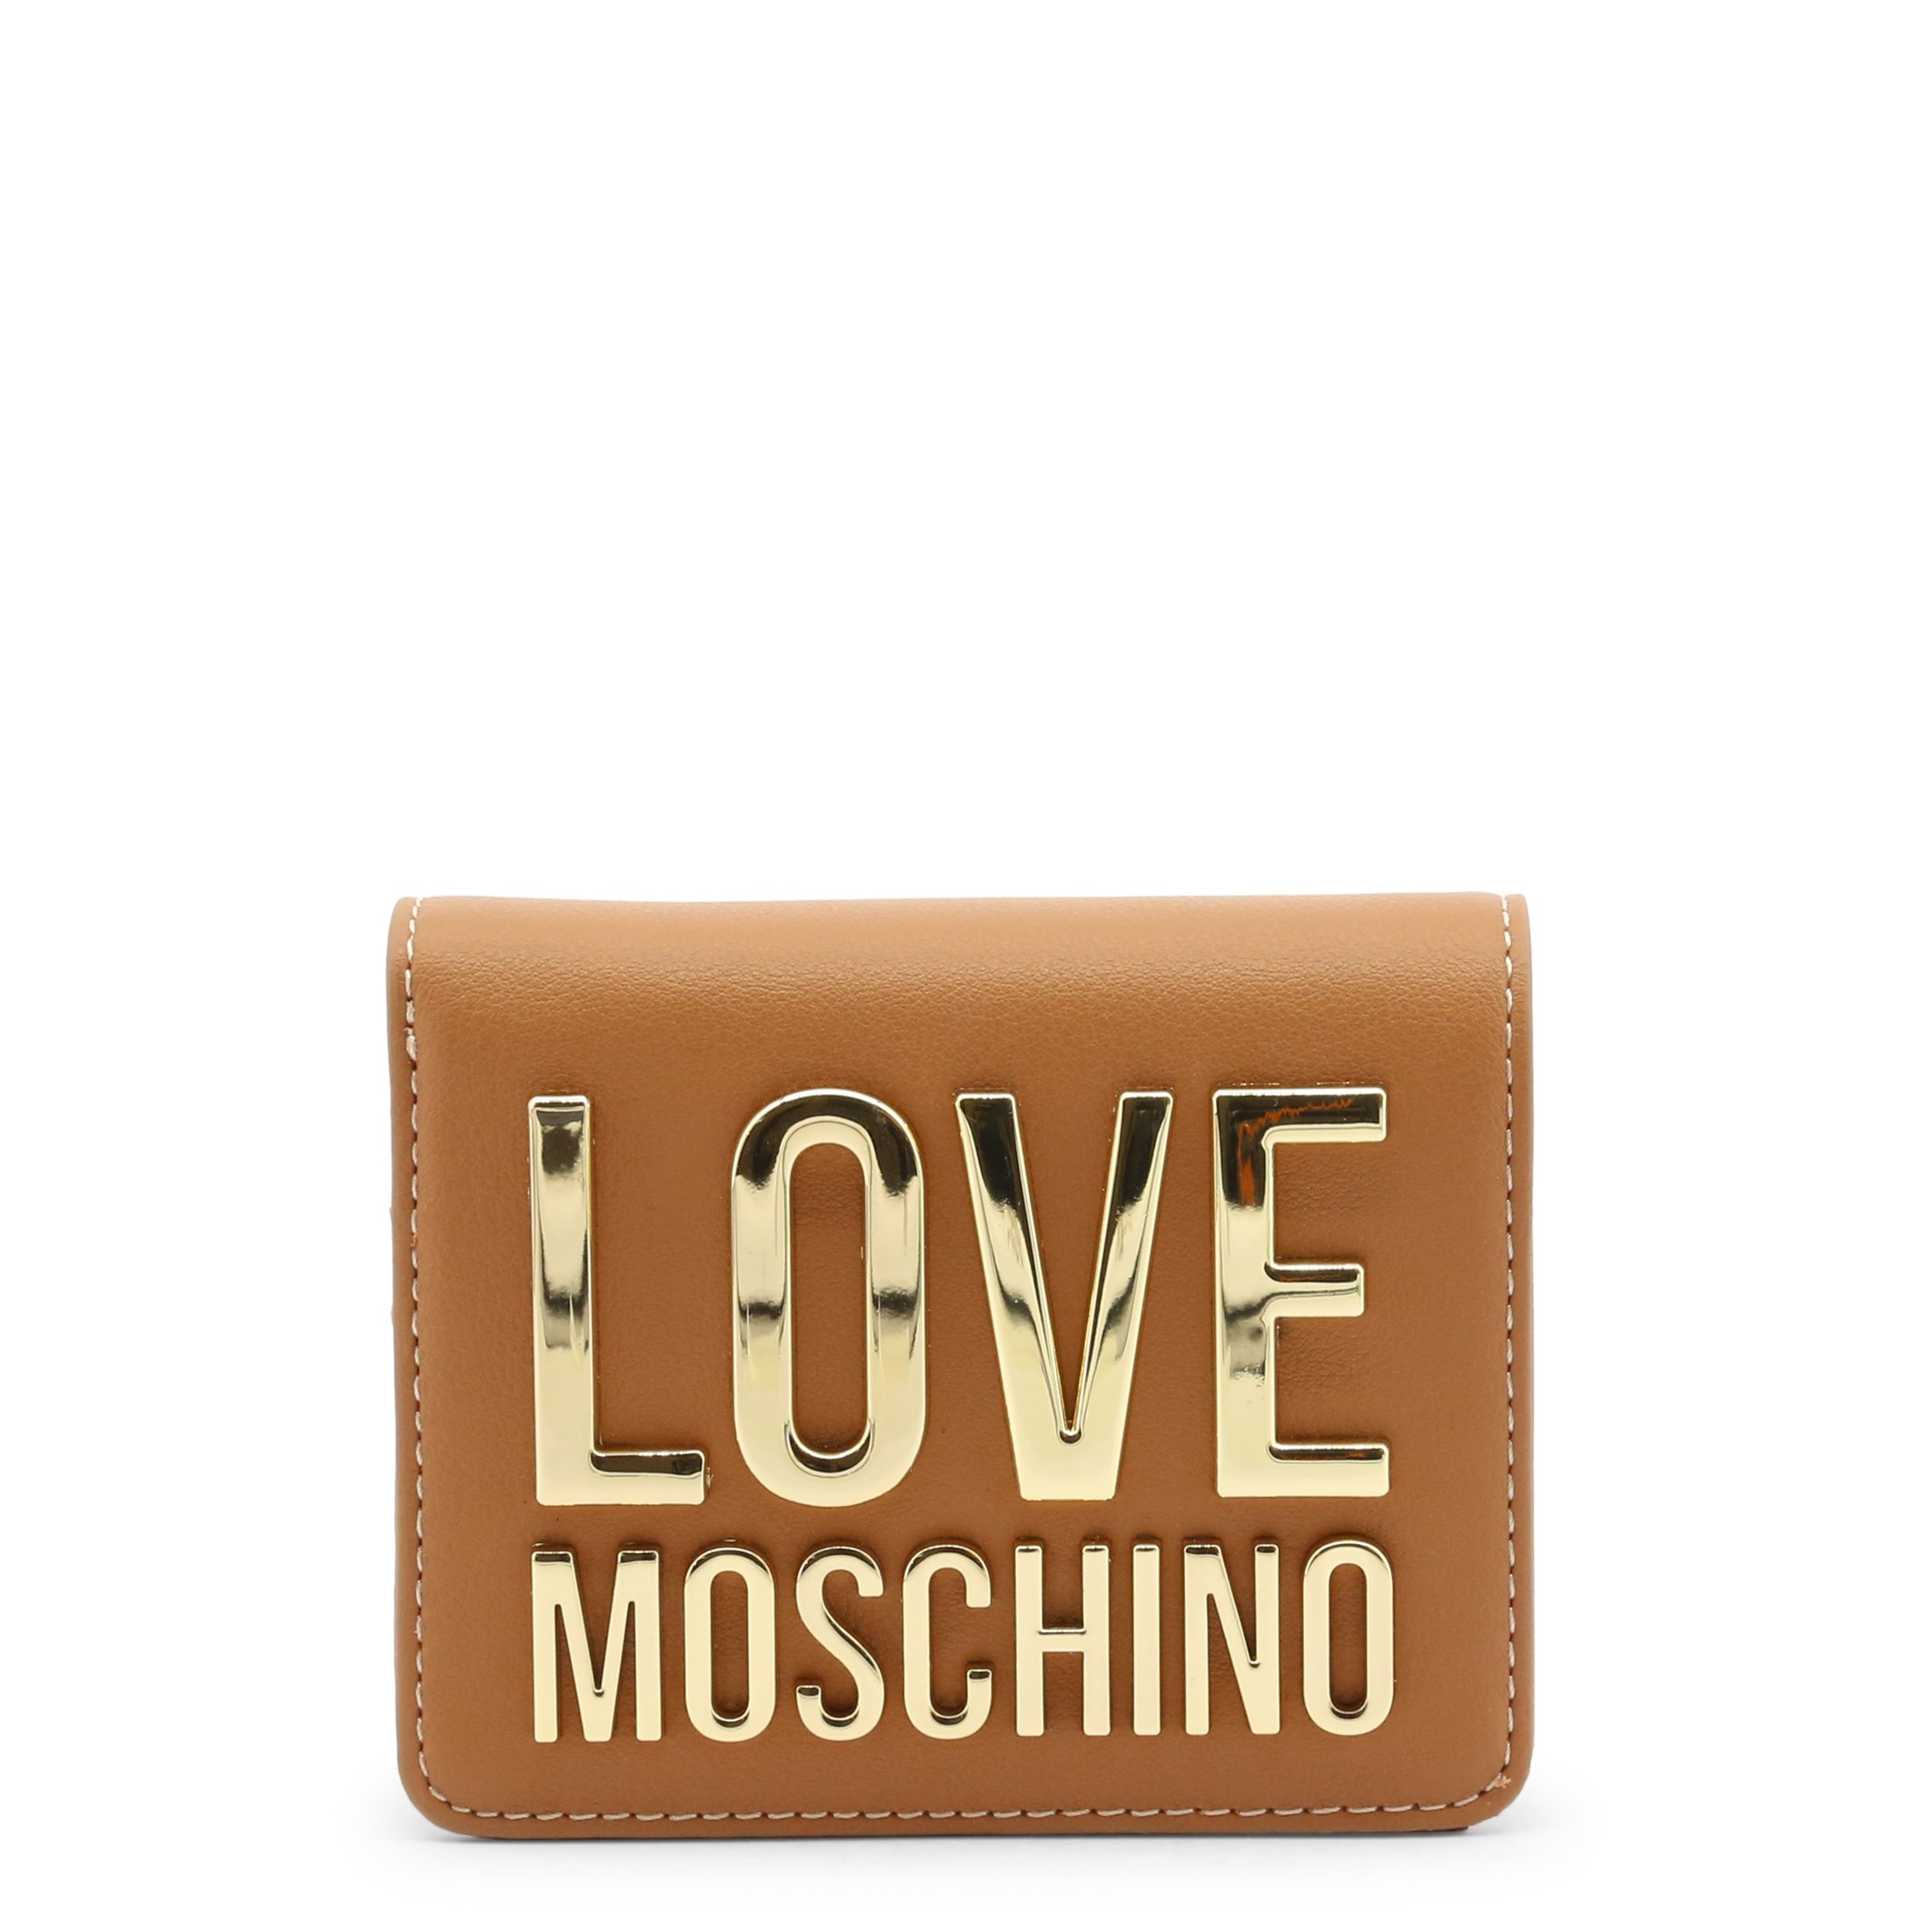 Love Moschino Women's Wallet Various Colours JC5612PP1DLJ0 - brown NOSIZE